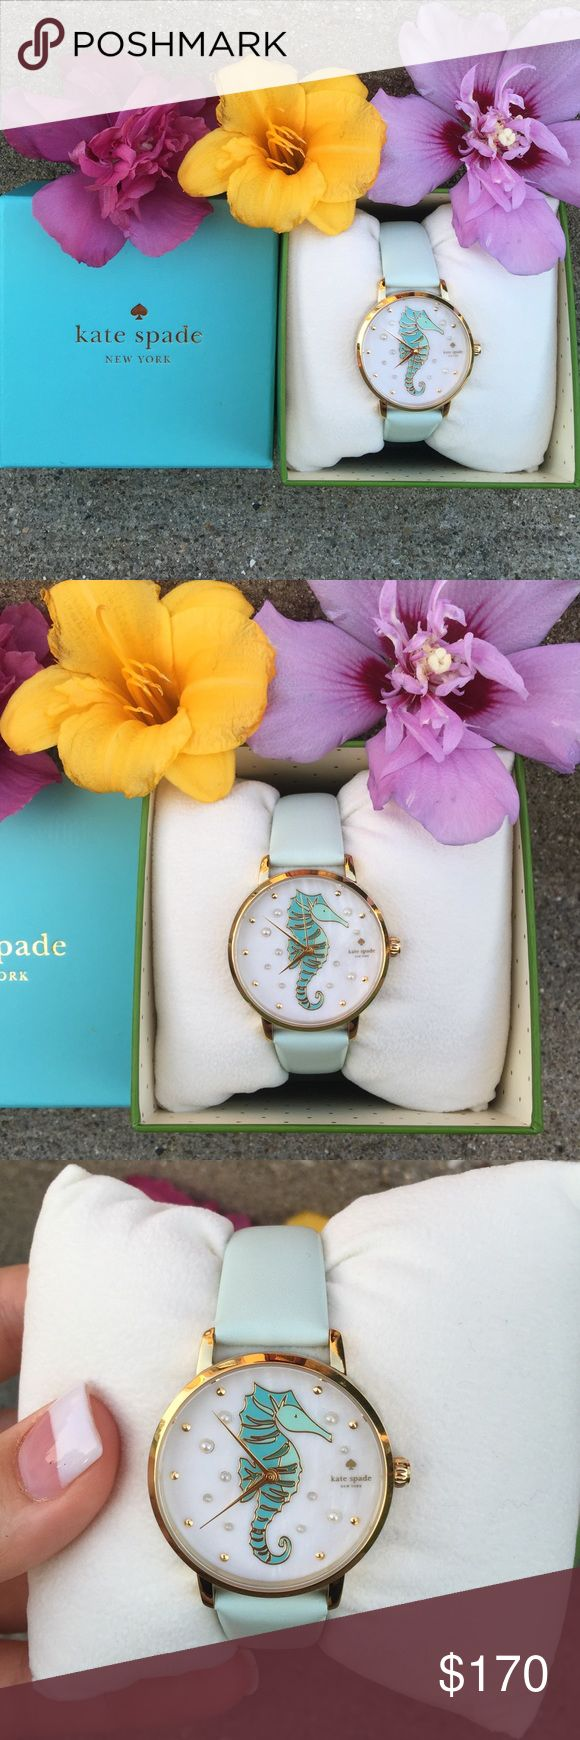 Kate Spade Sea Pony Metro Watch NWT! Pearl bubbles and an aqua sea-pony with gold-tone accents dance across the mother-of-pearl dial of this Kate Spade metro watch, anchored by a gold tone case and mint splash leather strap. Features a mother of pearl dial, gold tone dot markers at all hours, a 34mm case, and 16mm strap. Style # KSW1102. Comes with Kate Spade box, Kate Spade watch pillow, and authenticity booklet. Don't miss out - this watch is full price in Kate Spade stores! No trades. No…